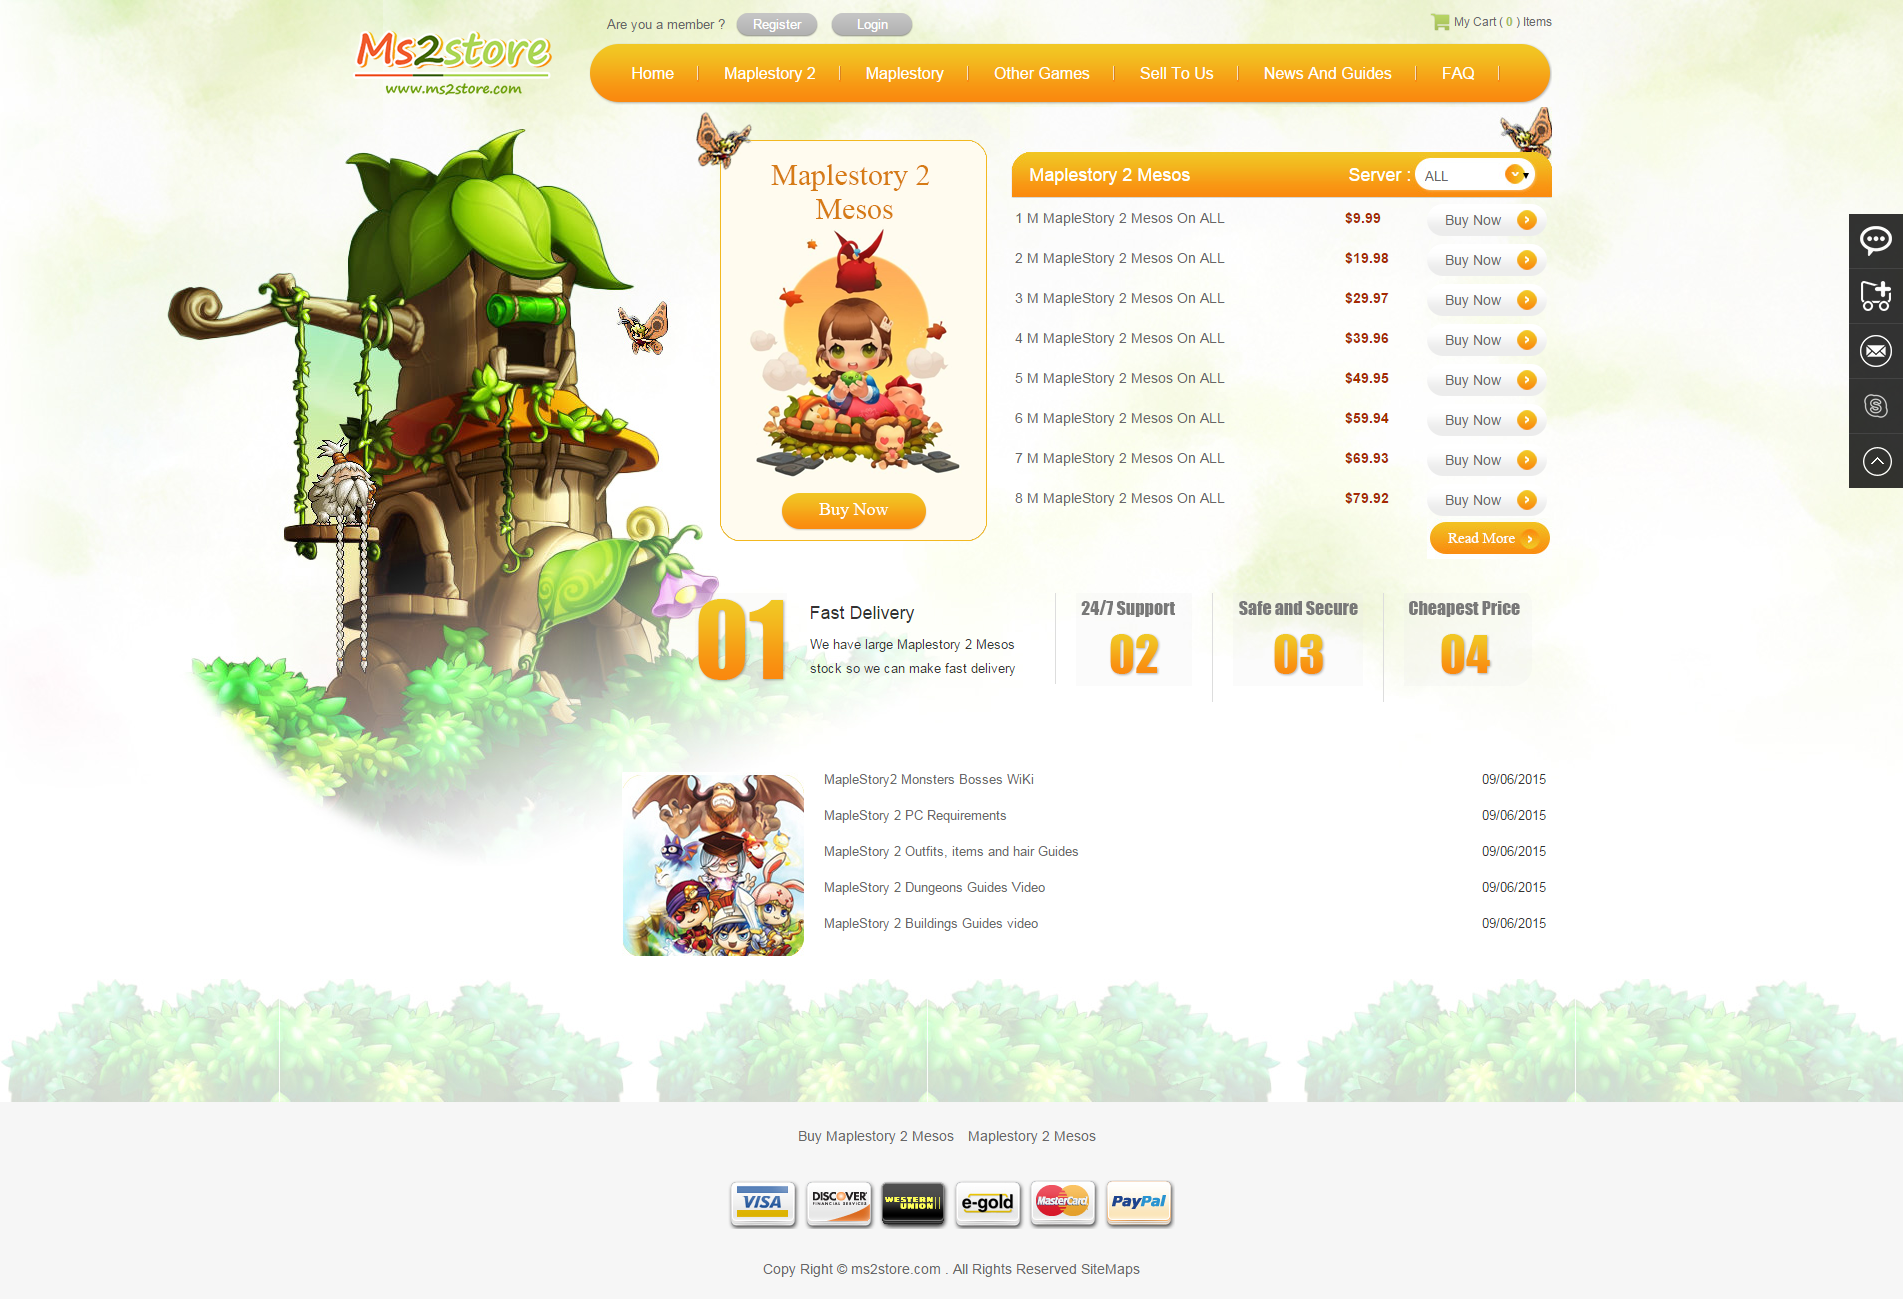 Picture of MS2Store.com